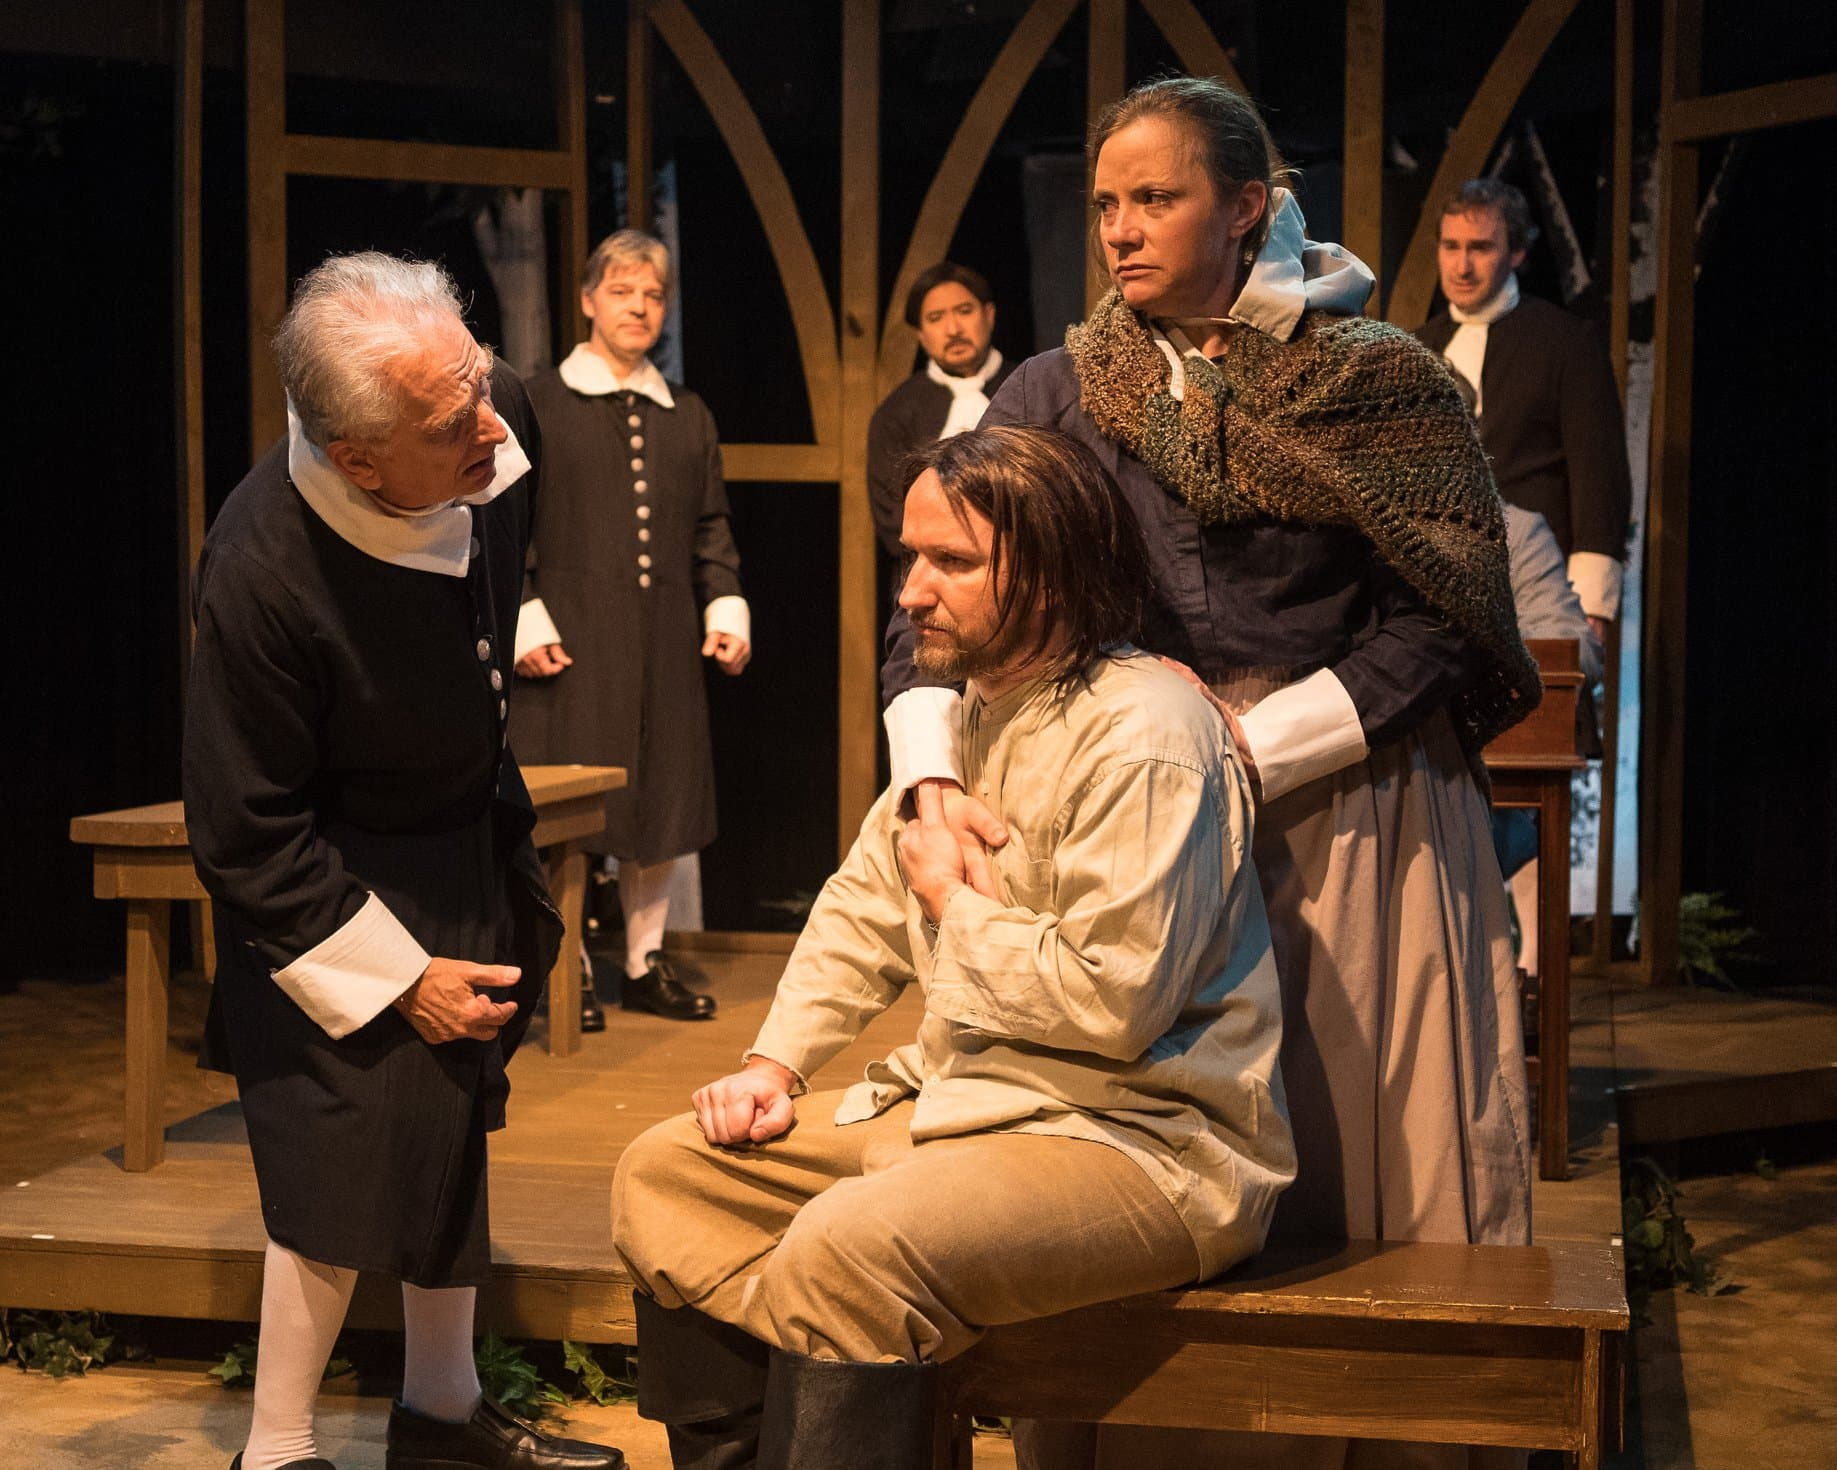 The cast of The Crucible, now playing at Silver Spring Stage. Photo by Harvey Levine.